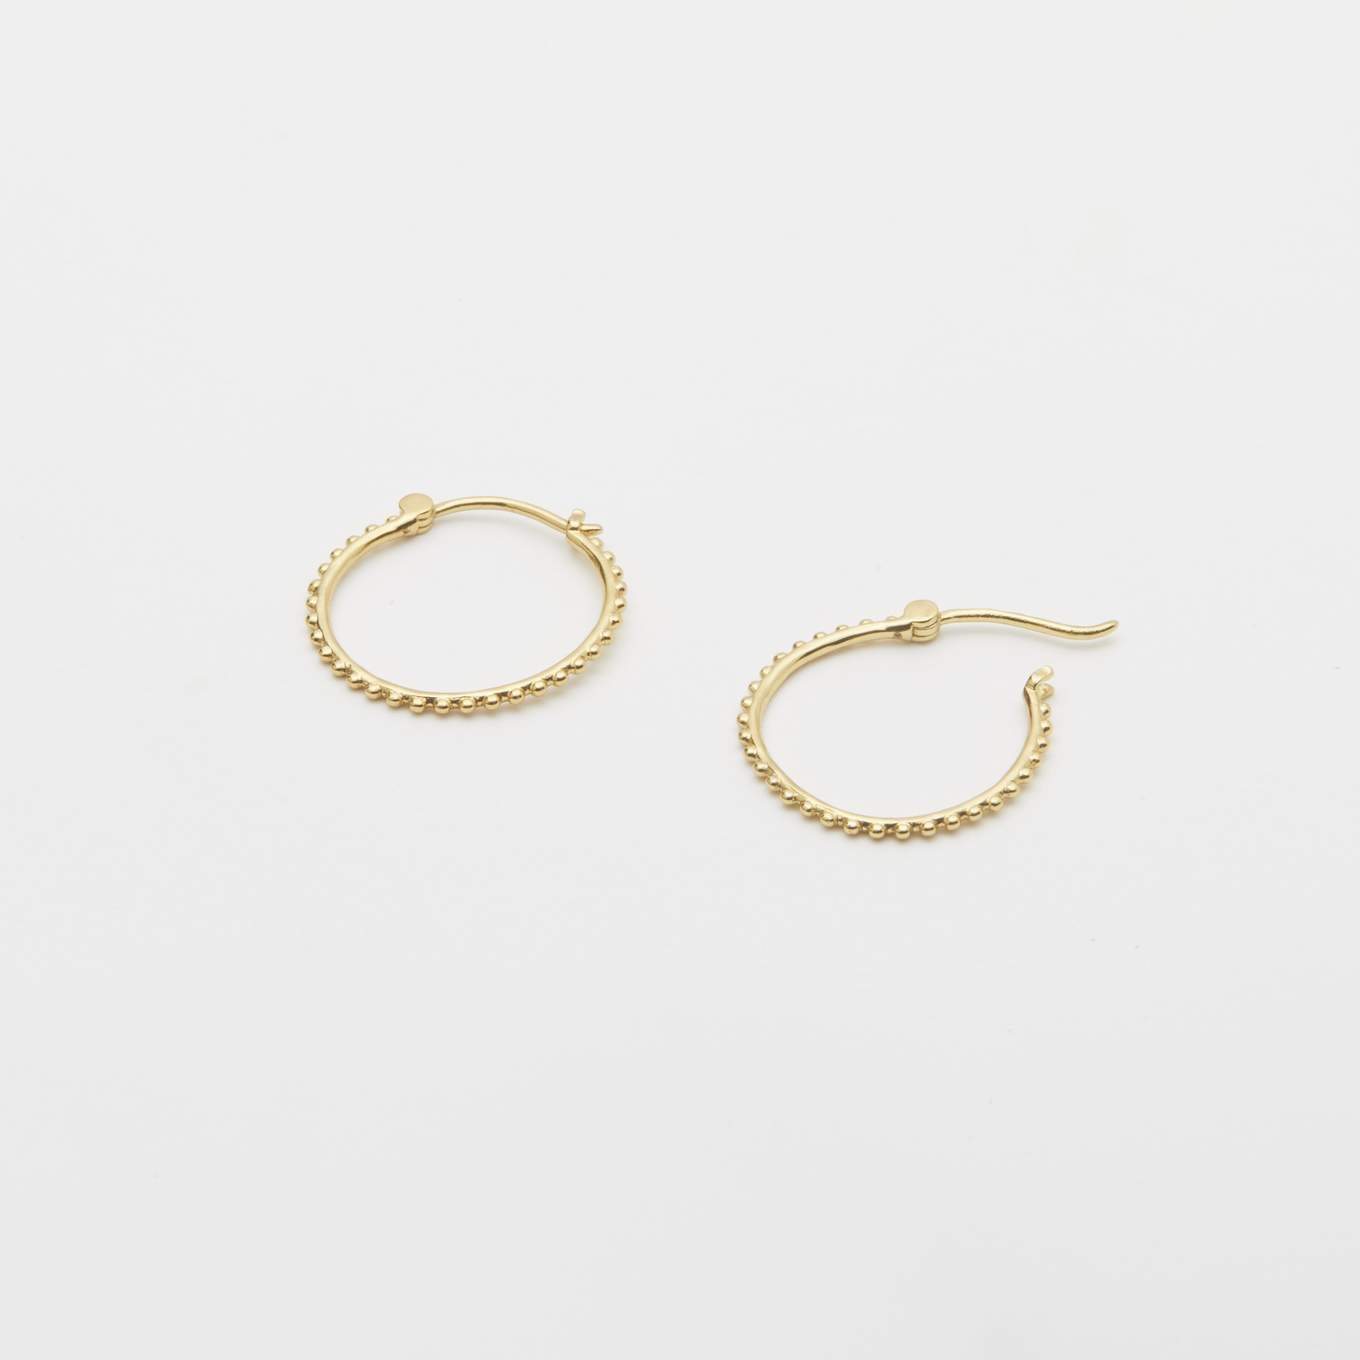 "The Gorjana Bali Small Hoops are the perfect size earring with a classic Bali beaded design, these huggie hoops are effortlessly chic and easily pairs with any outfit. 3/4"" in diameter. Hinge closure. Available in 18k gold plated brass."